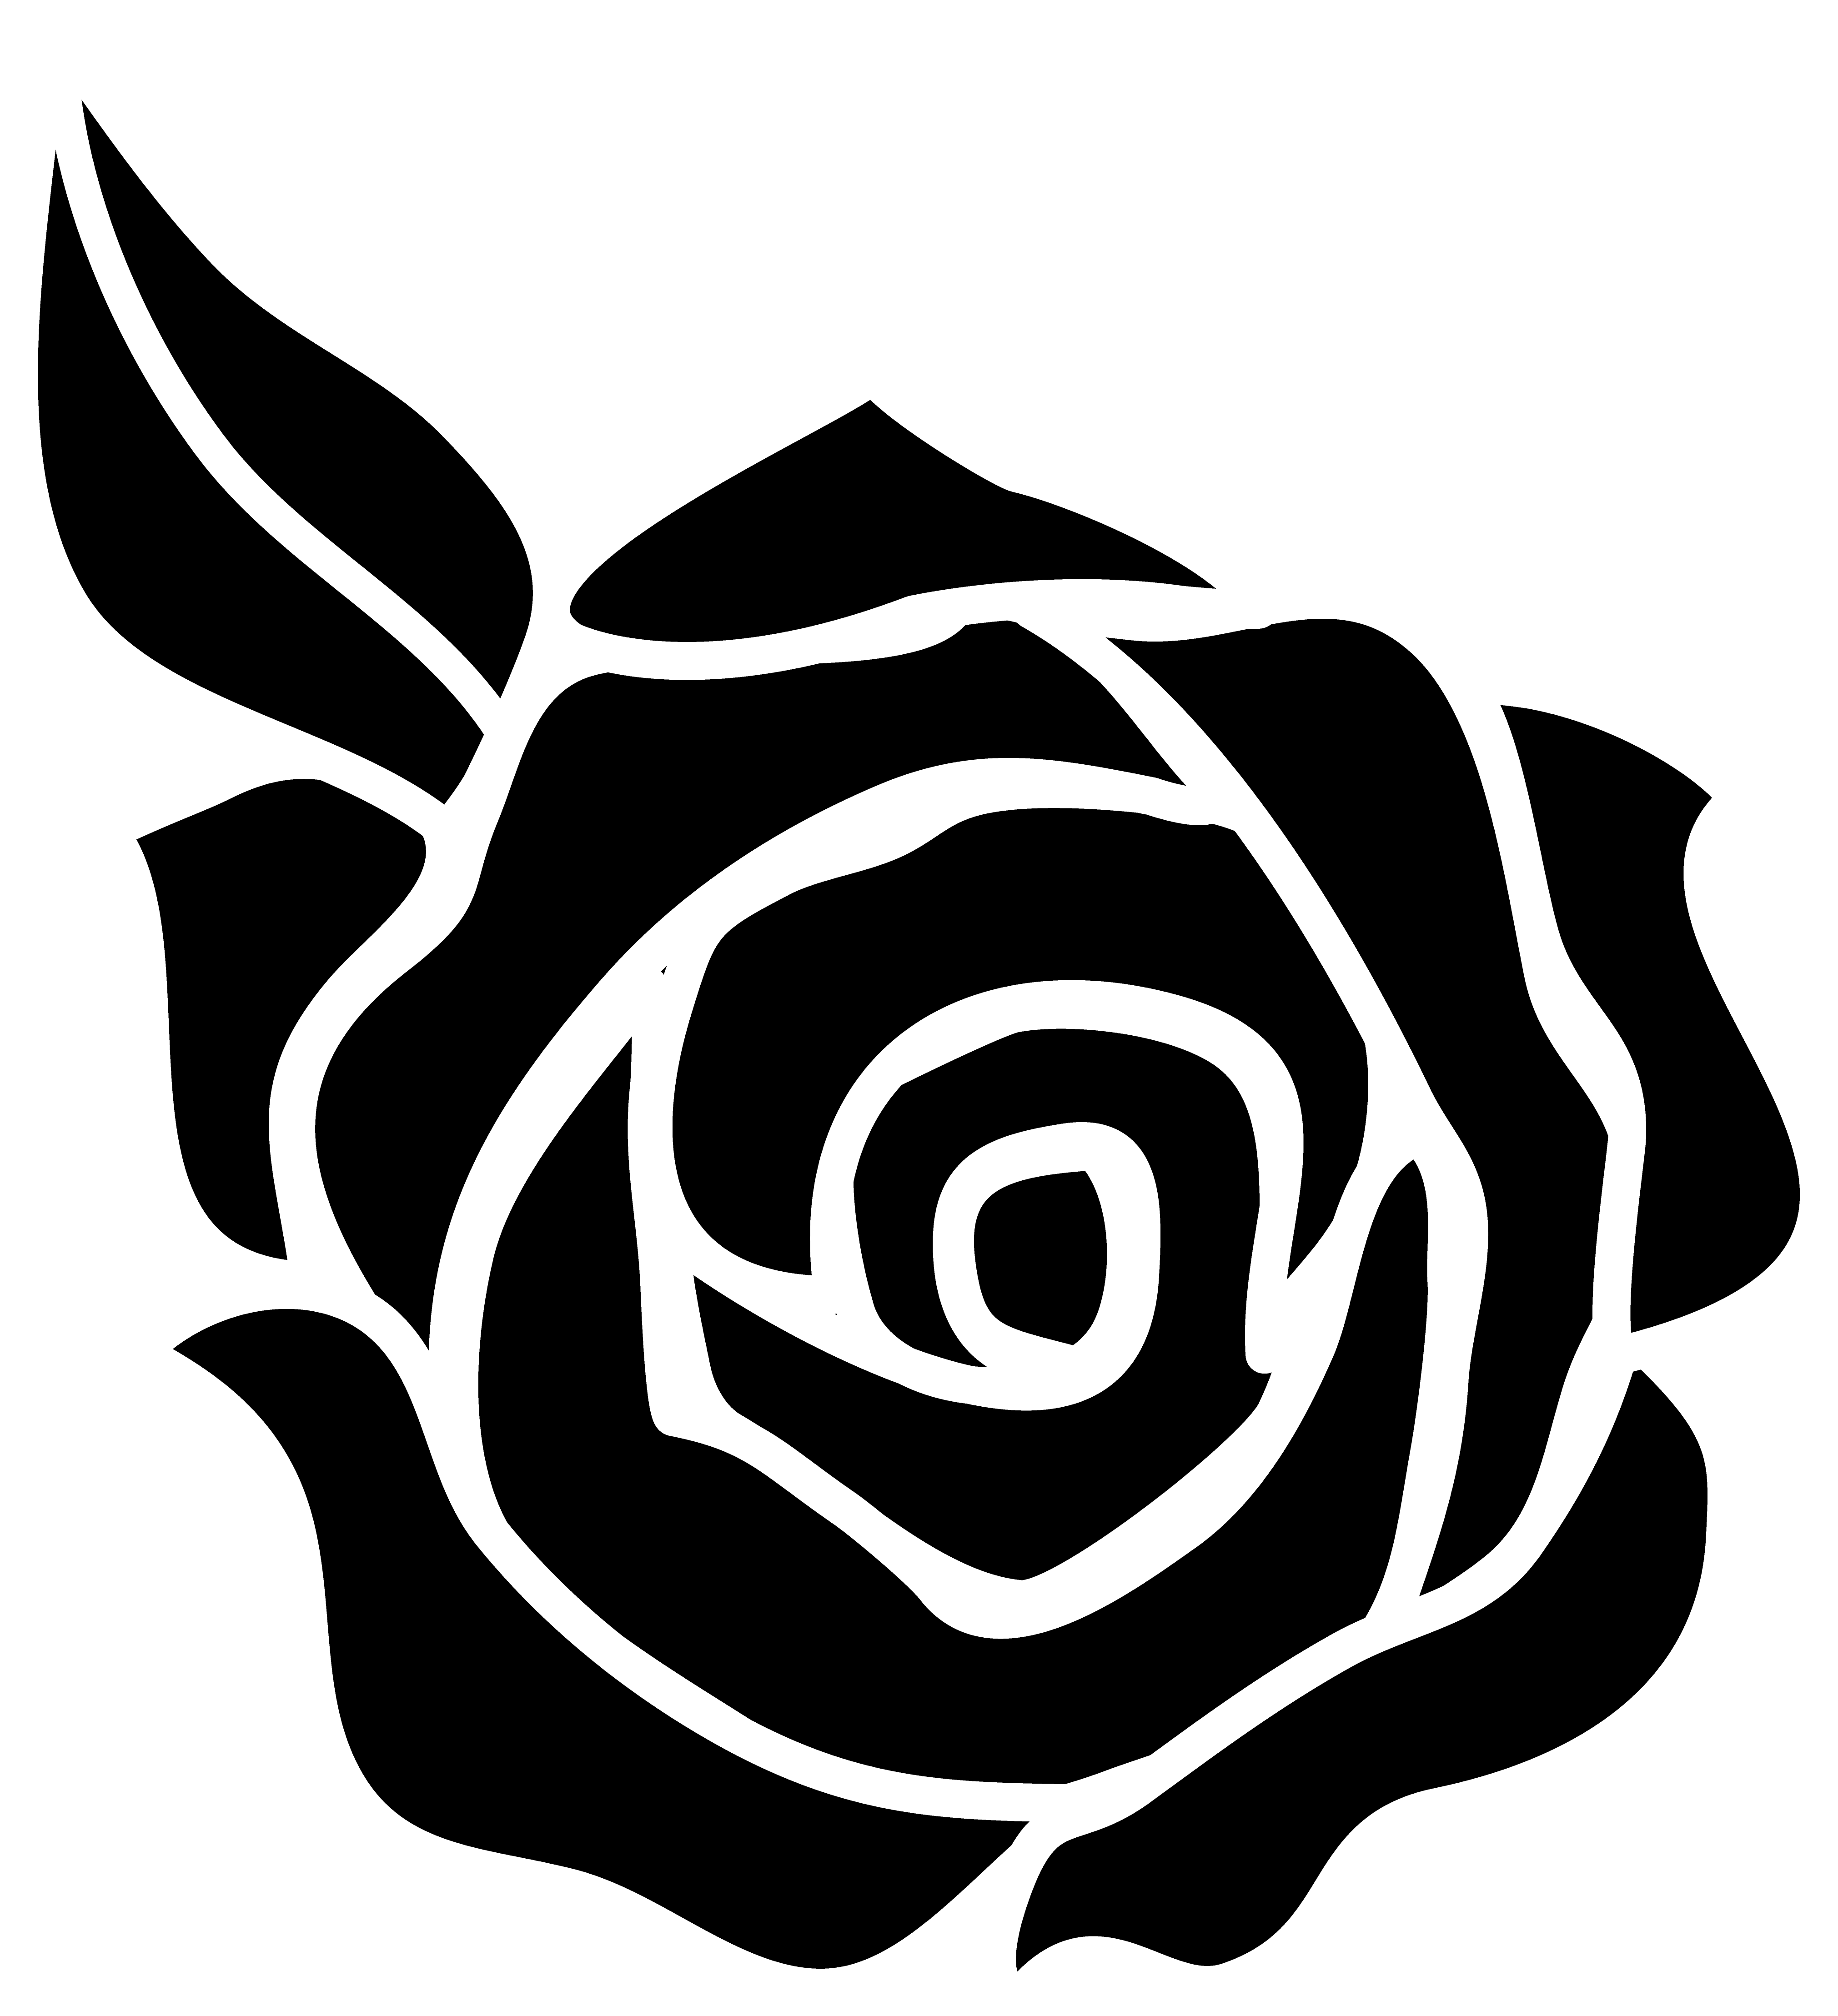 White rose cartoon clipart png library stock Free Cartoon Rose Black And White, Download Free Clip Art ... png library stock